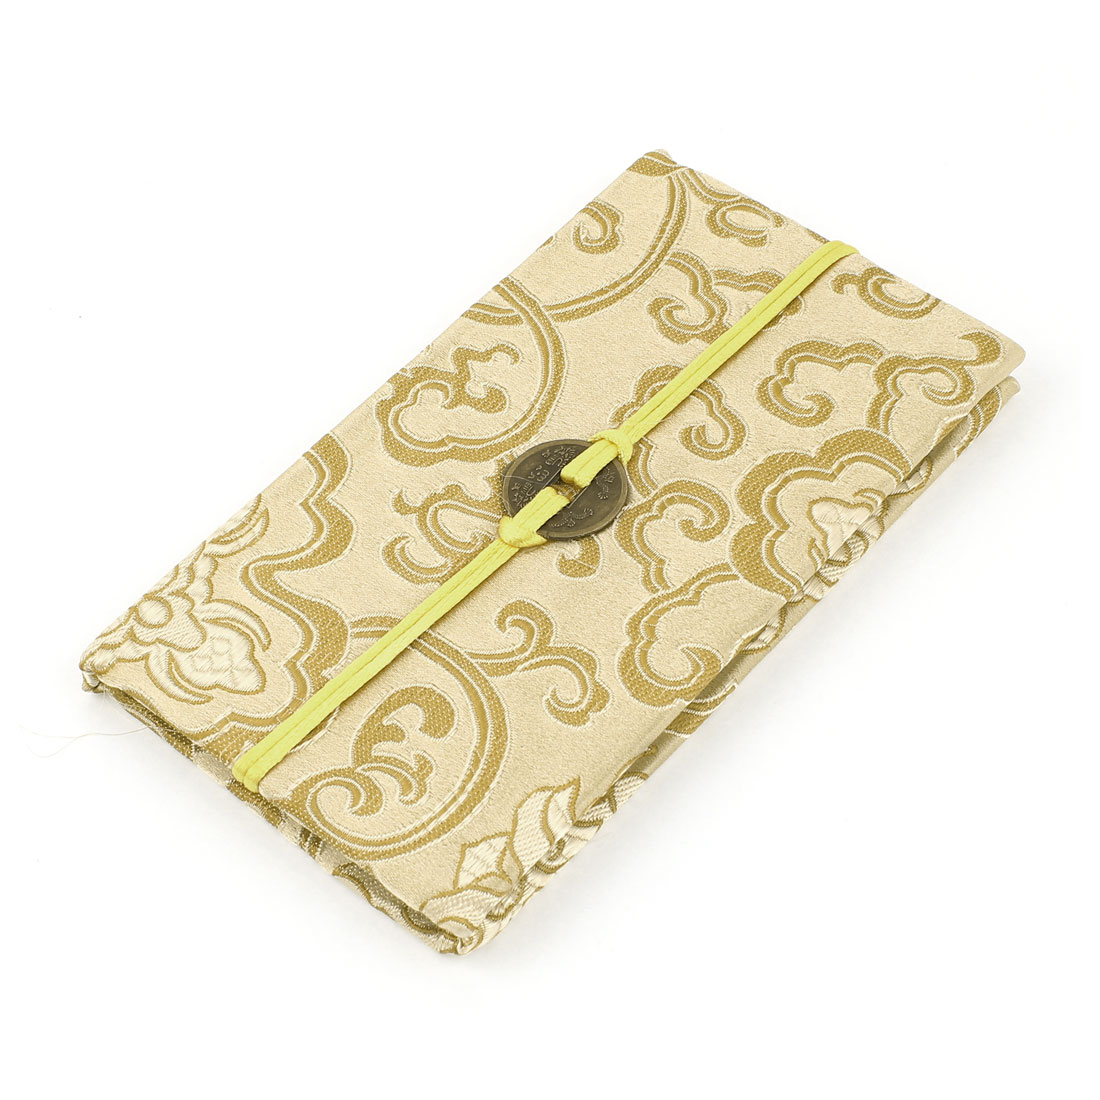 Embroidery Floral Pattern Nylon Coated Copper Coin String Decor Memo Book Notepad Champagne Color